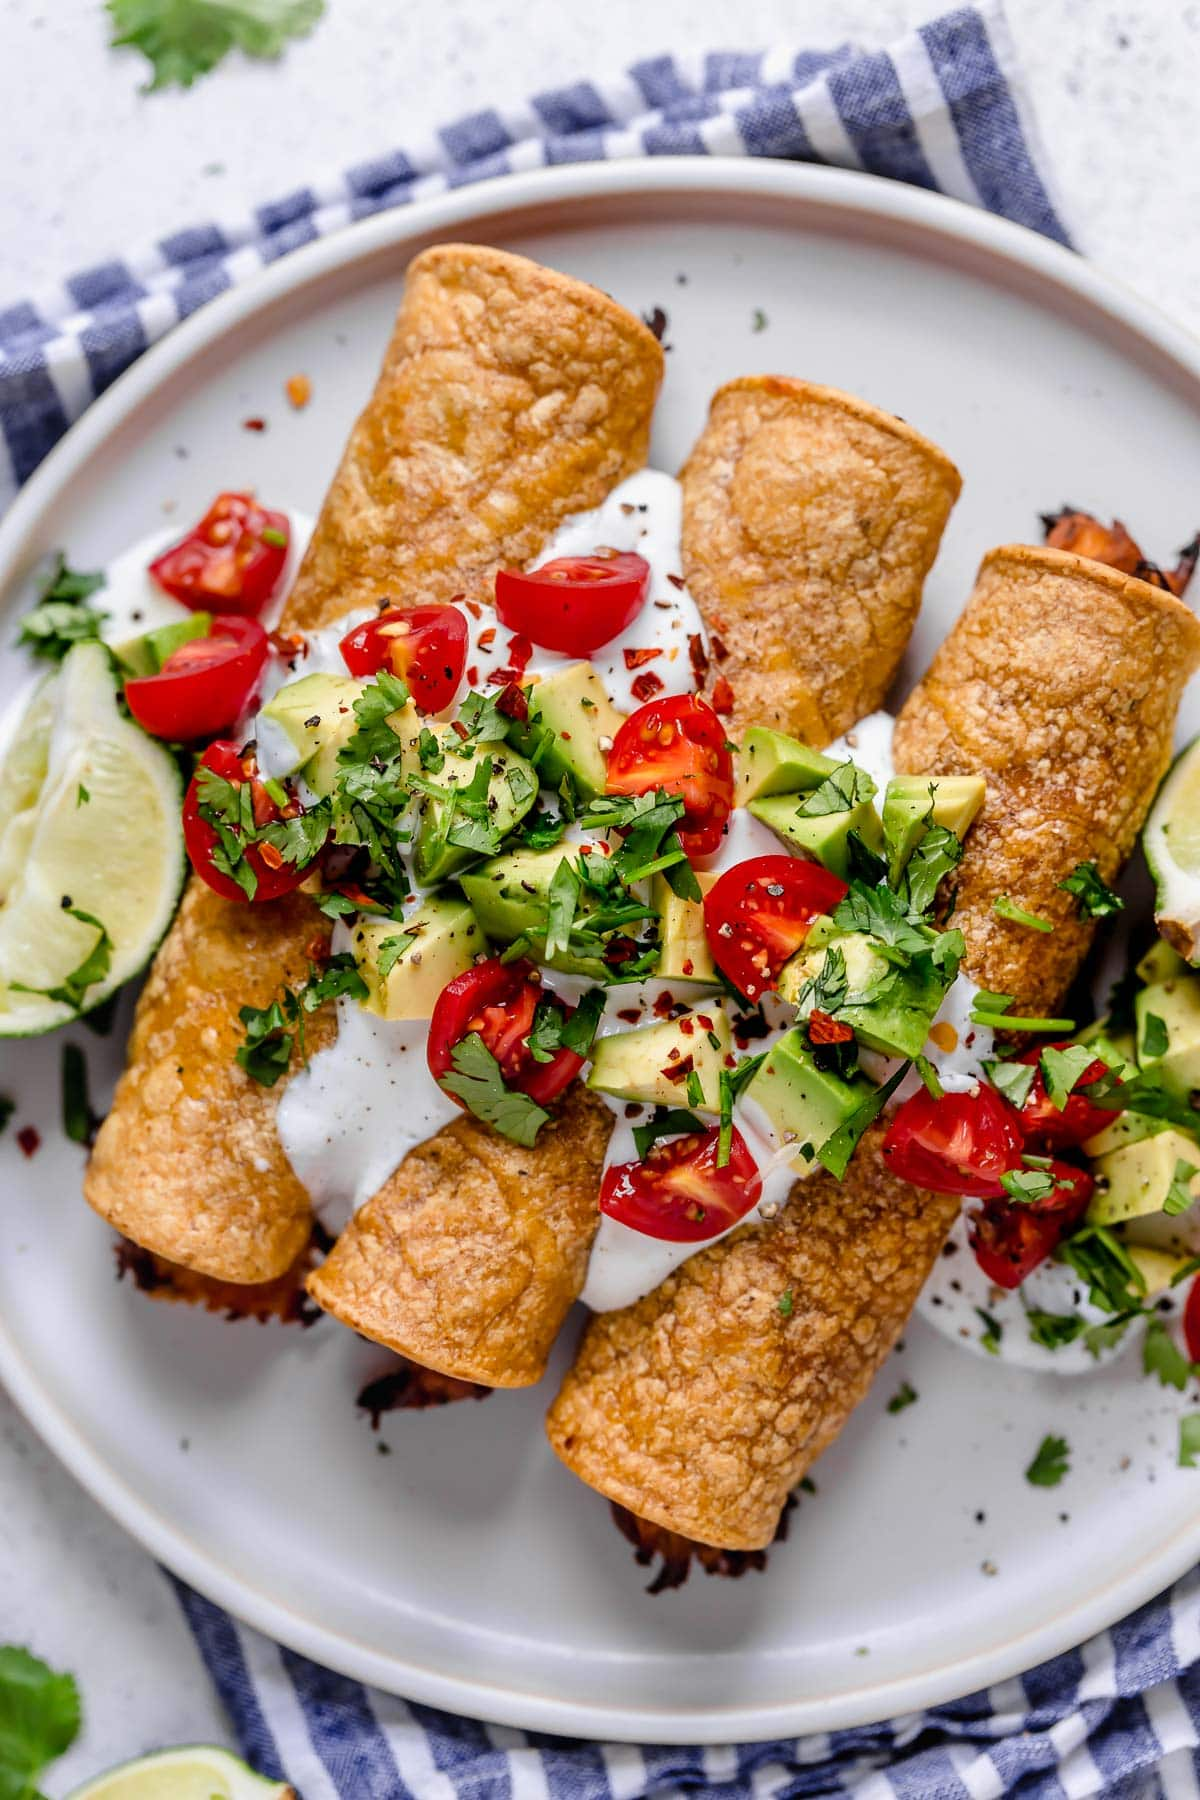 Overhead image of chicken taquitos on a white serving plate topped with sour cream, tomatoes, avocados and cilantro.